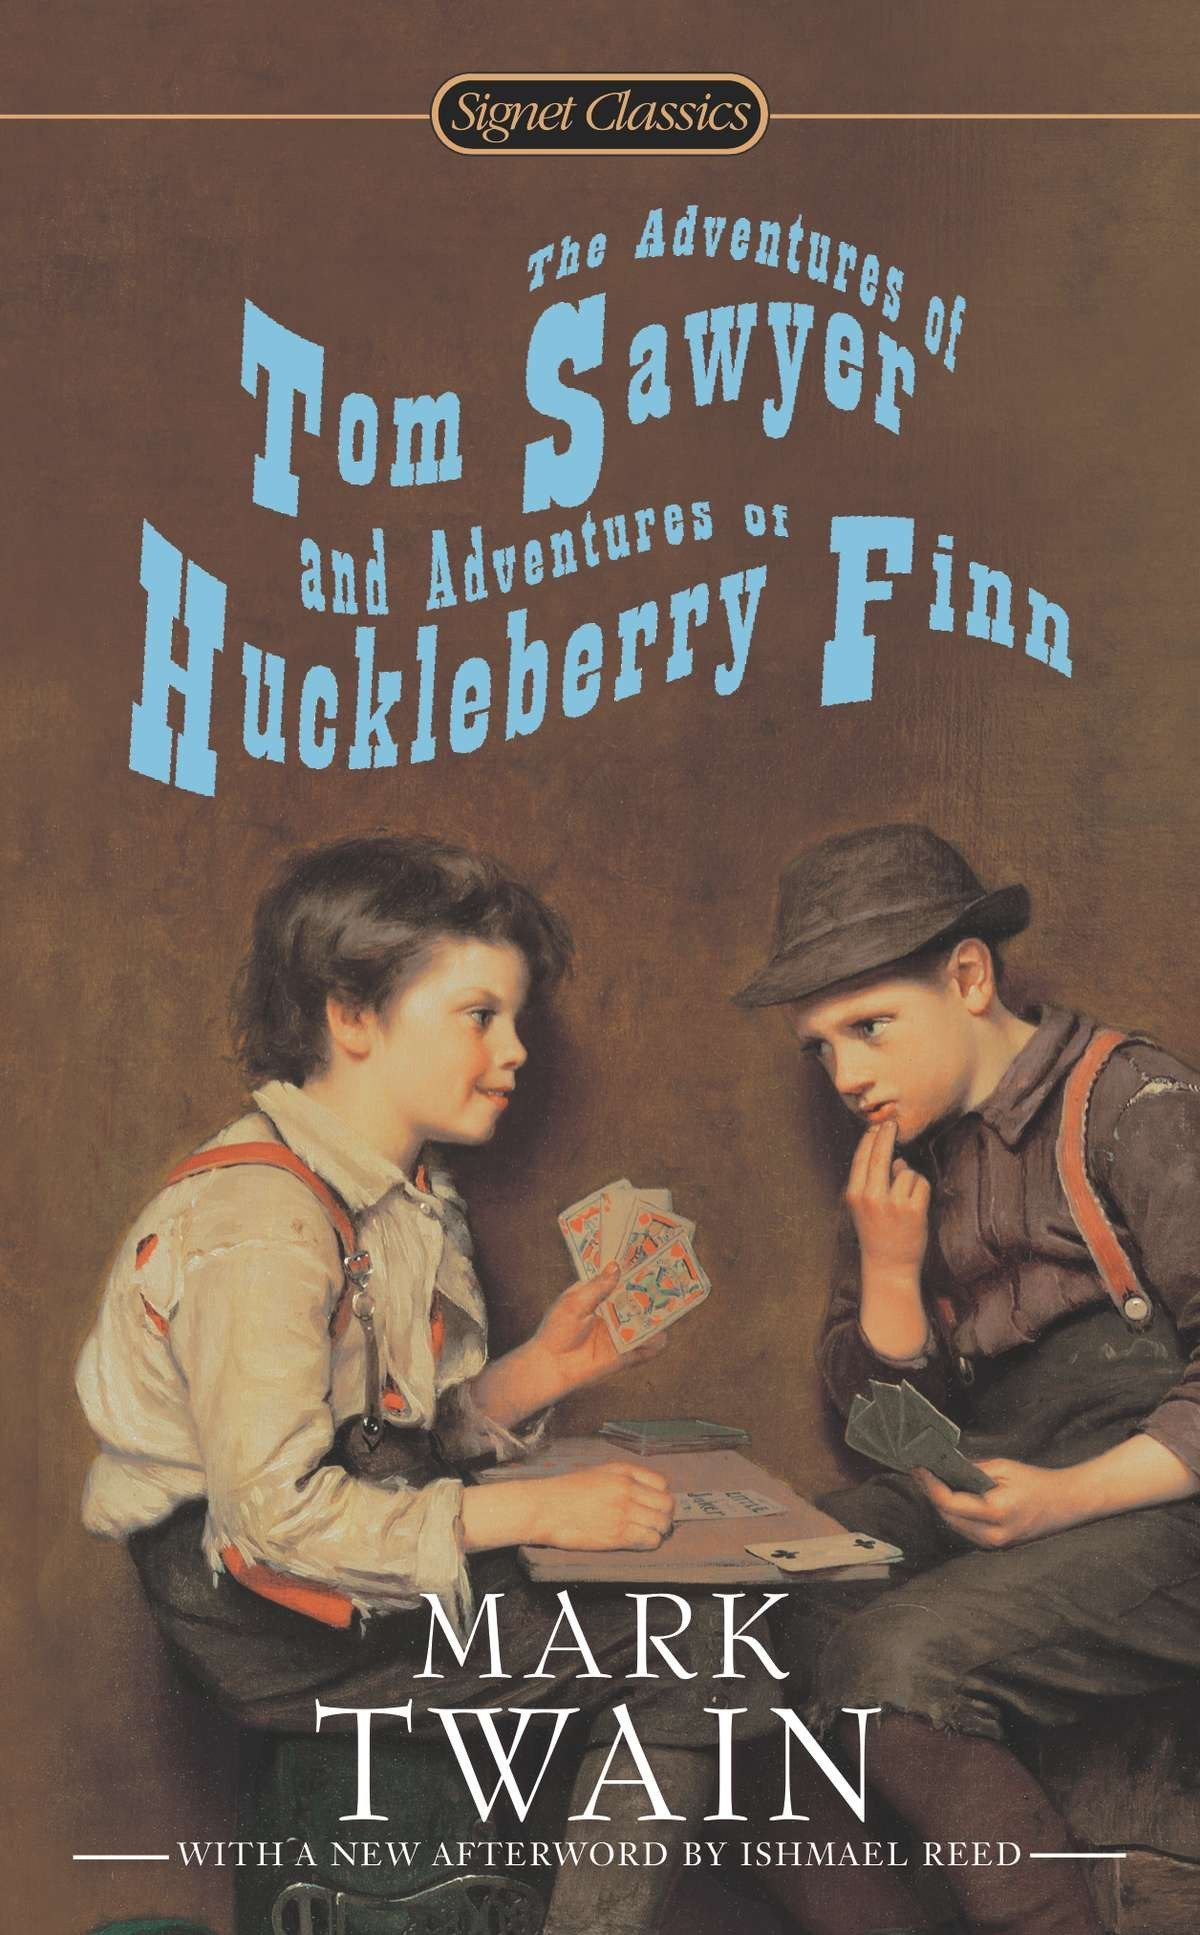 Read Online The Adventures of Tom Sawyer and Adventures of Huckleberry Finn (Signet Classics) pdf